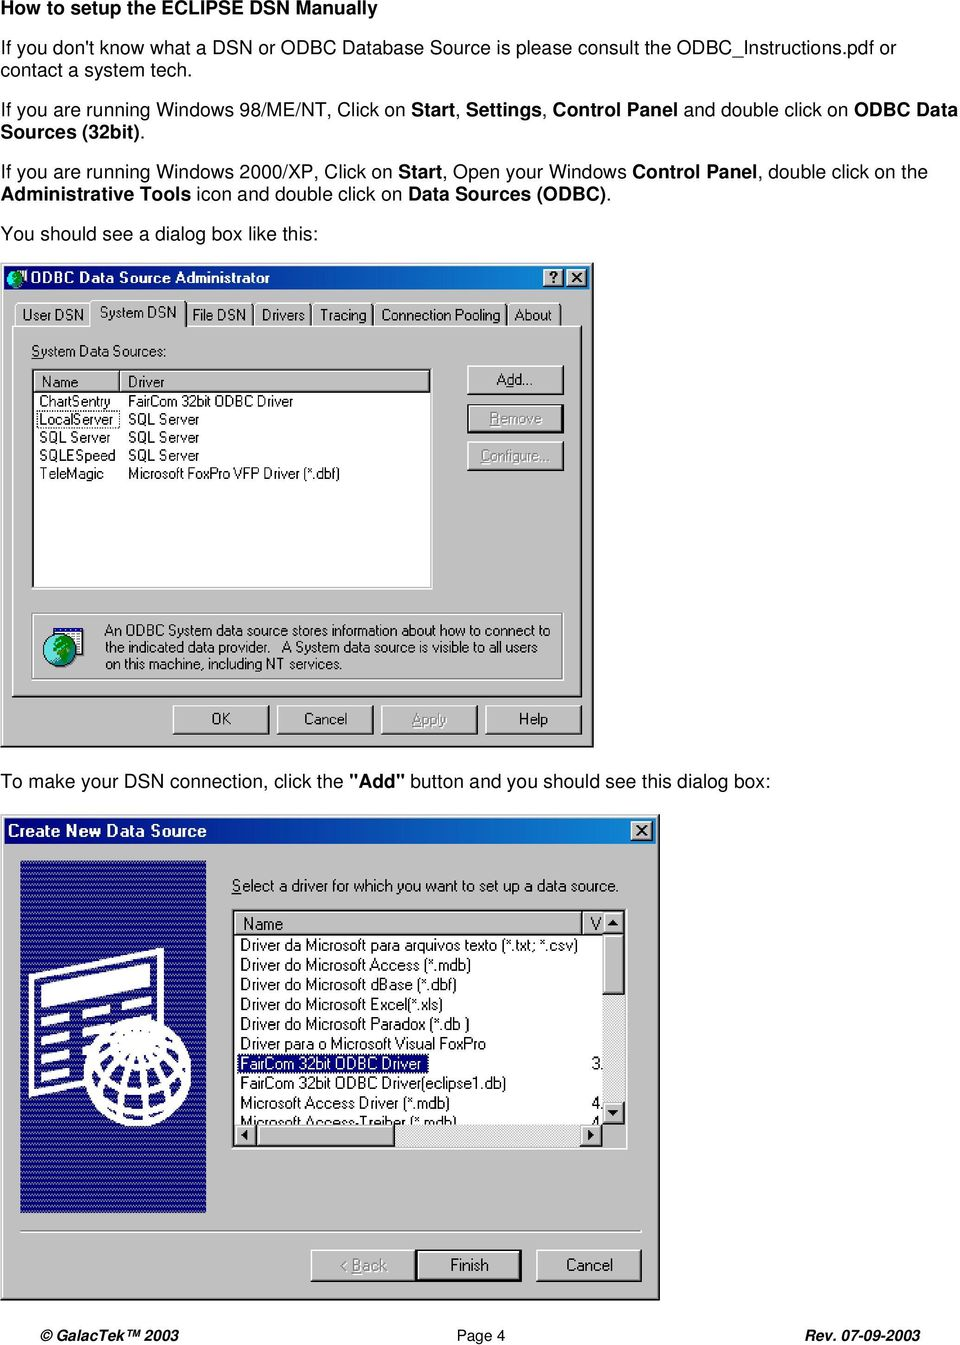 If you are running Windows 2000/XP, Click on Start, Open your Windows Control Panel, double click on the Administrative Tools icon and double click on